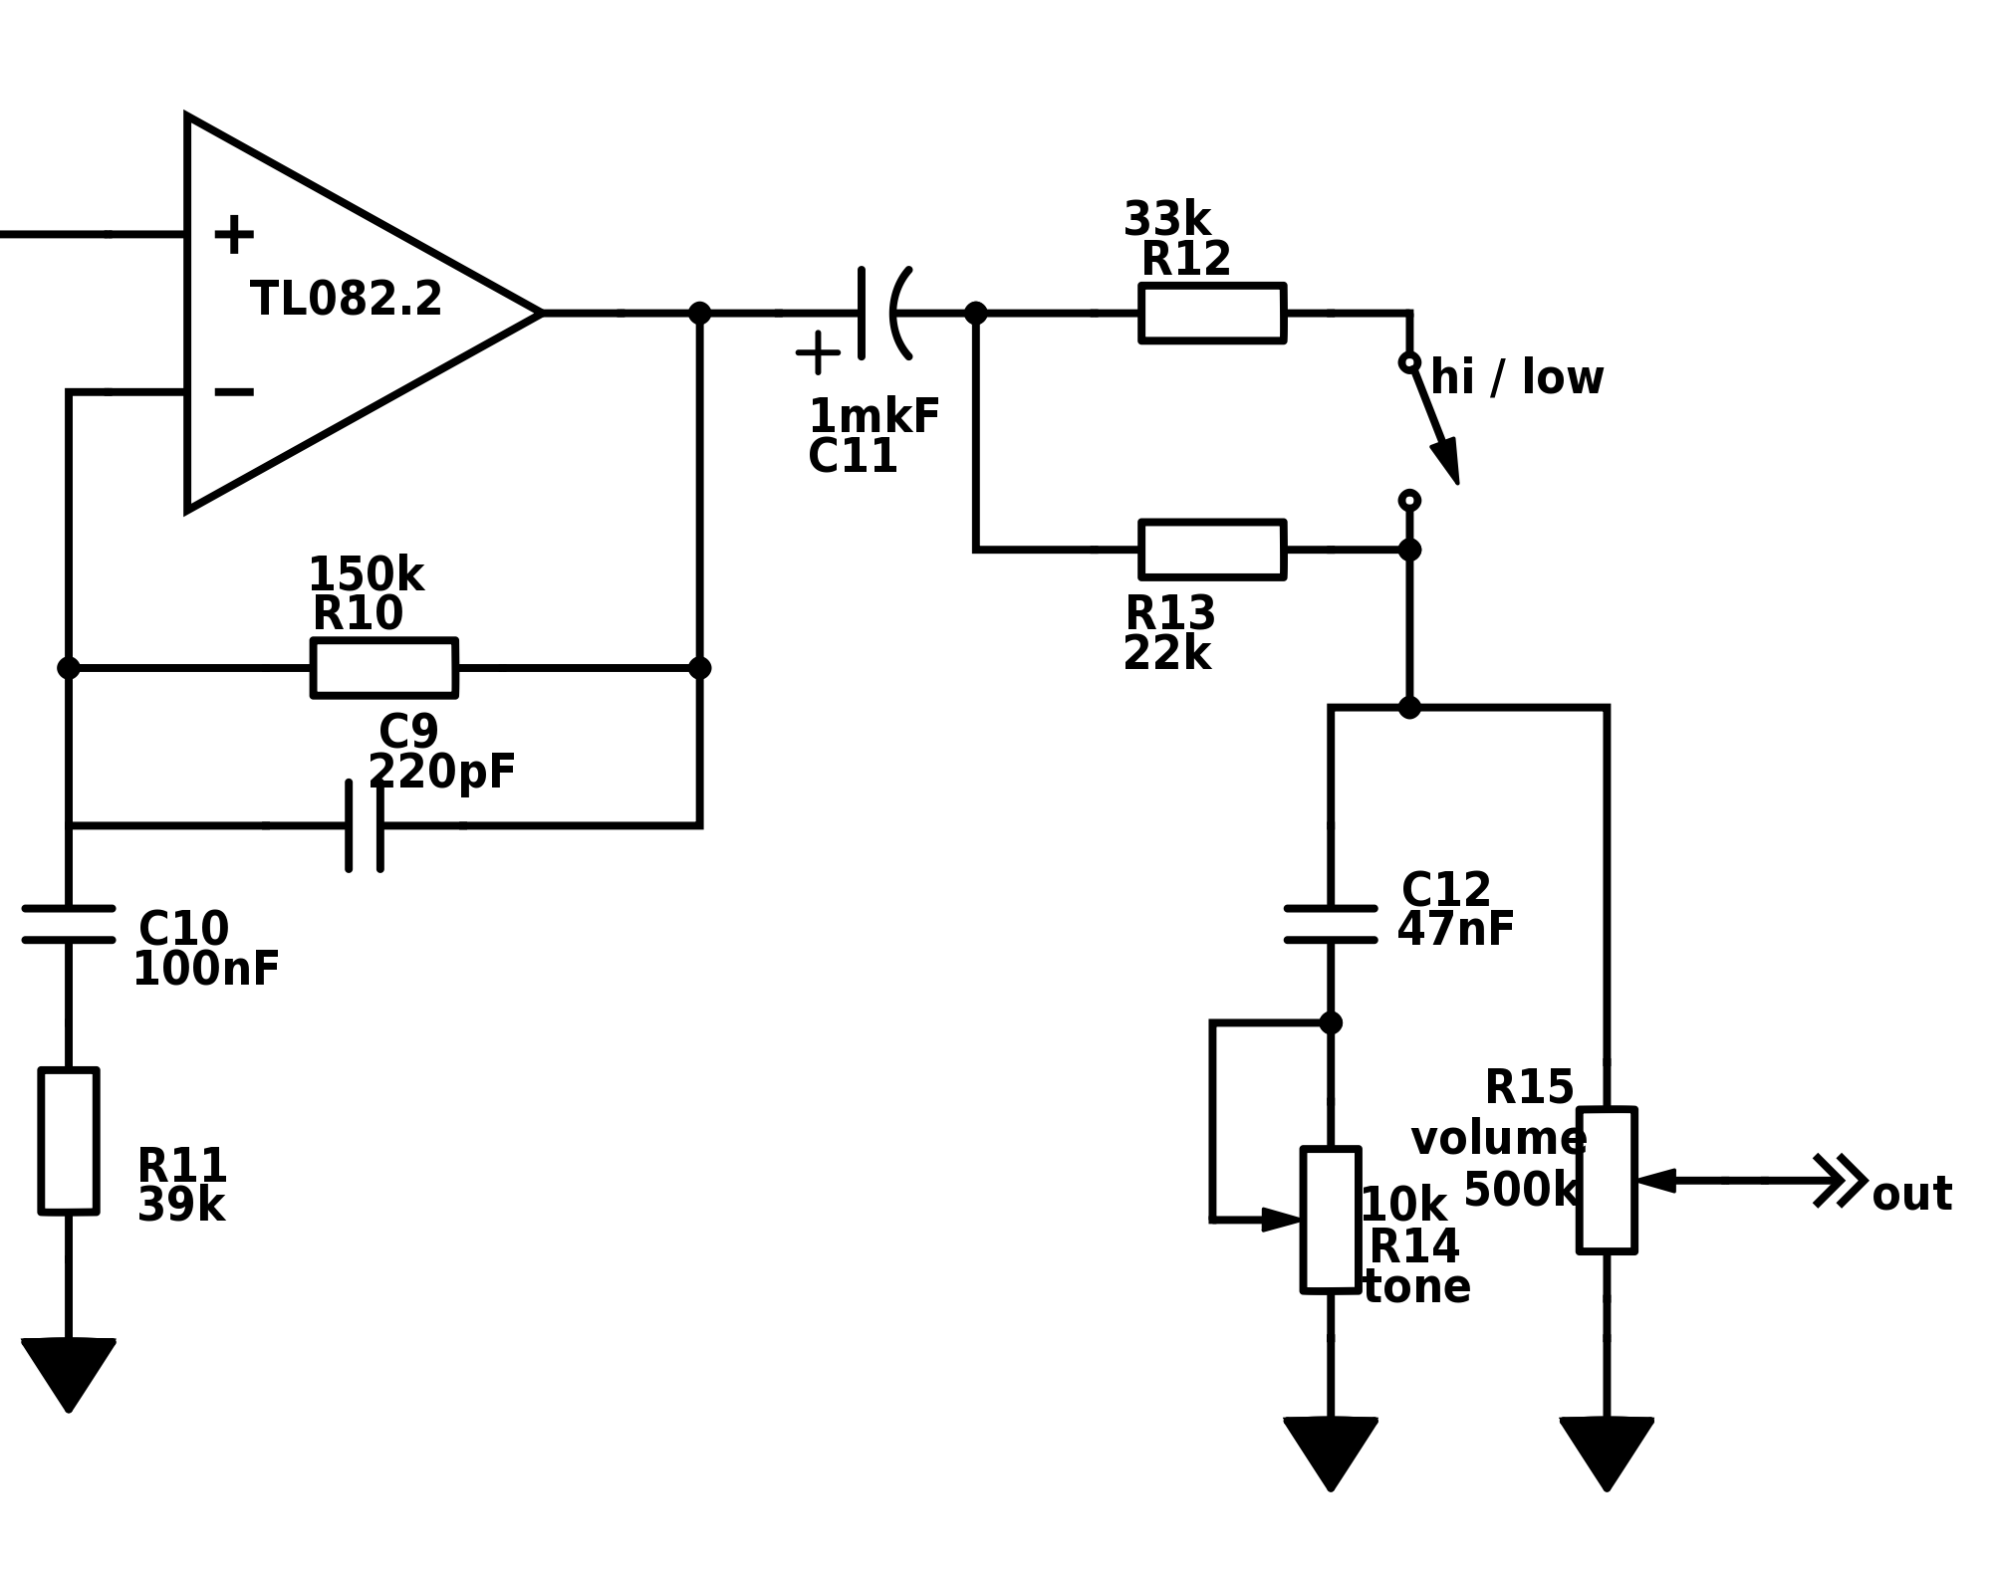 hight resolution of after the op amp we have to go back to our real ground for this reason we need coupling capacitor c11 because pedal could be connected to devise with